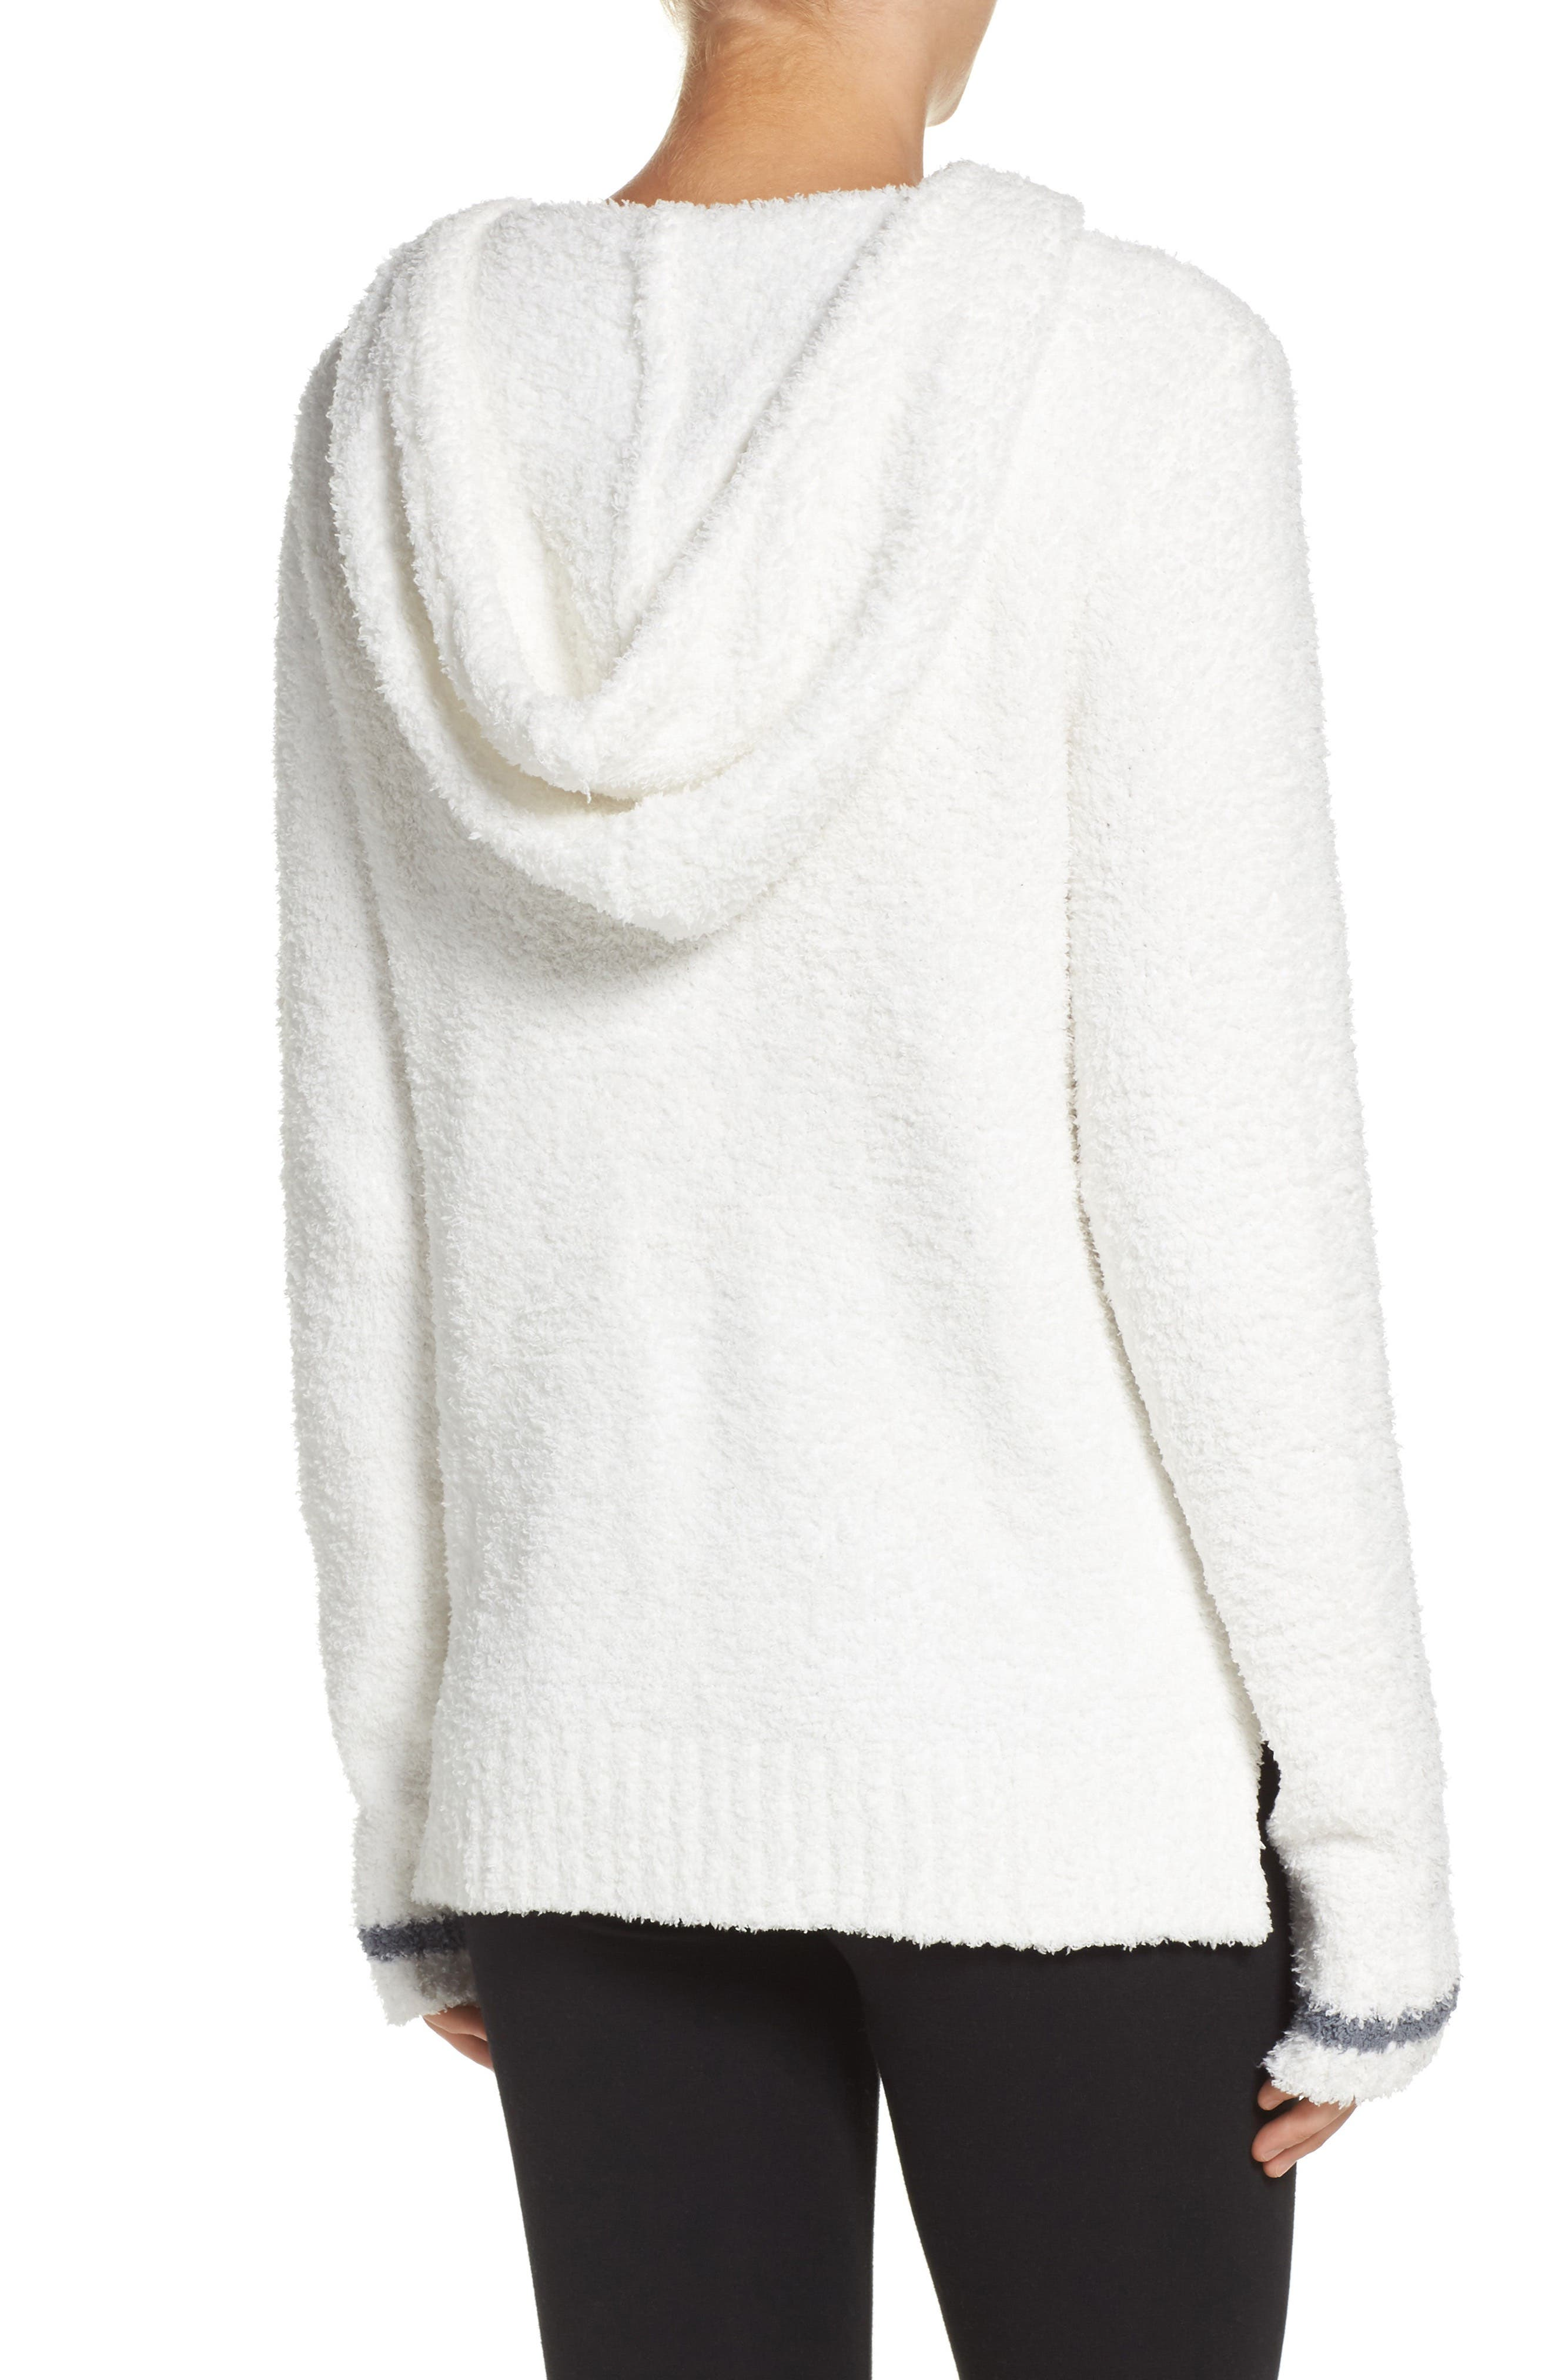 Barefoot Dreams Cozychic<sup>®</sup> Baha Lounge Hoodie,                             Alternate thumbnail 2, color,                             White/ Graphite Stripe